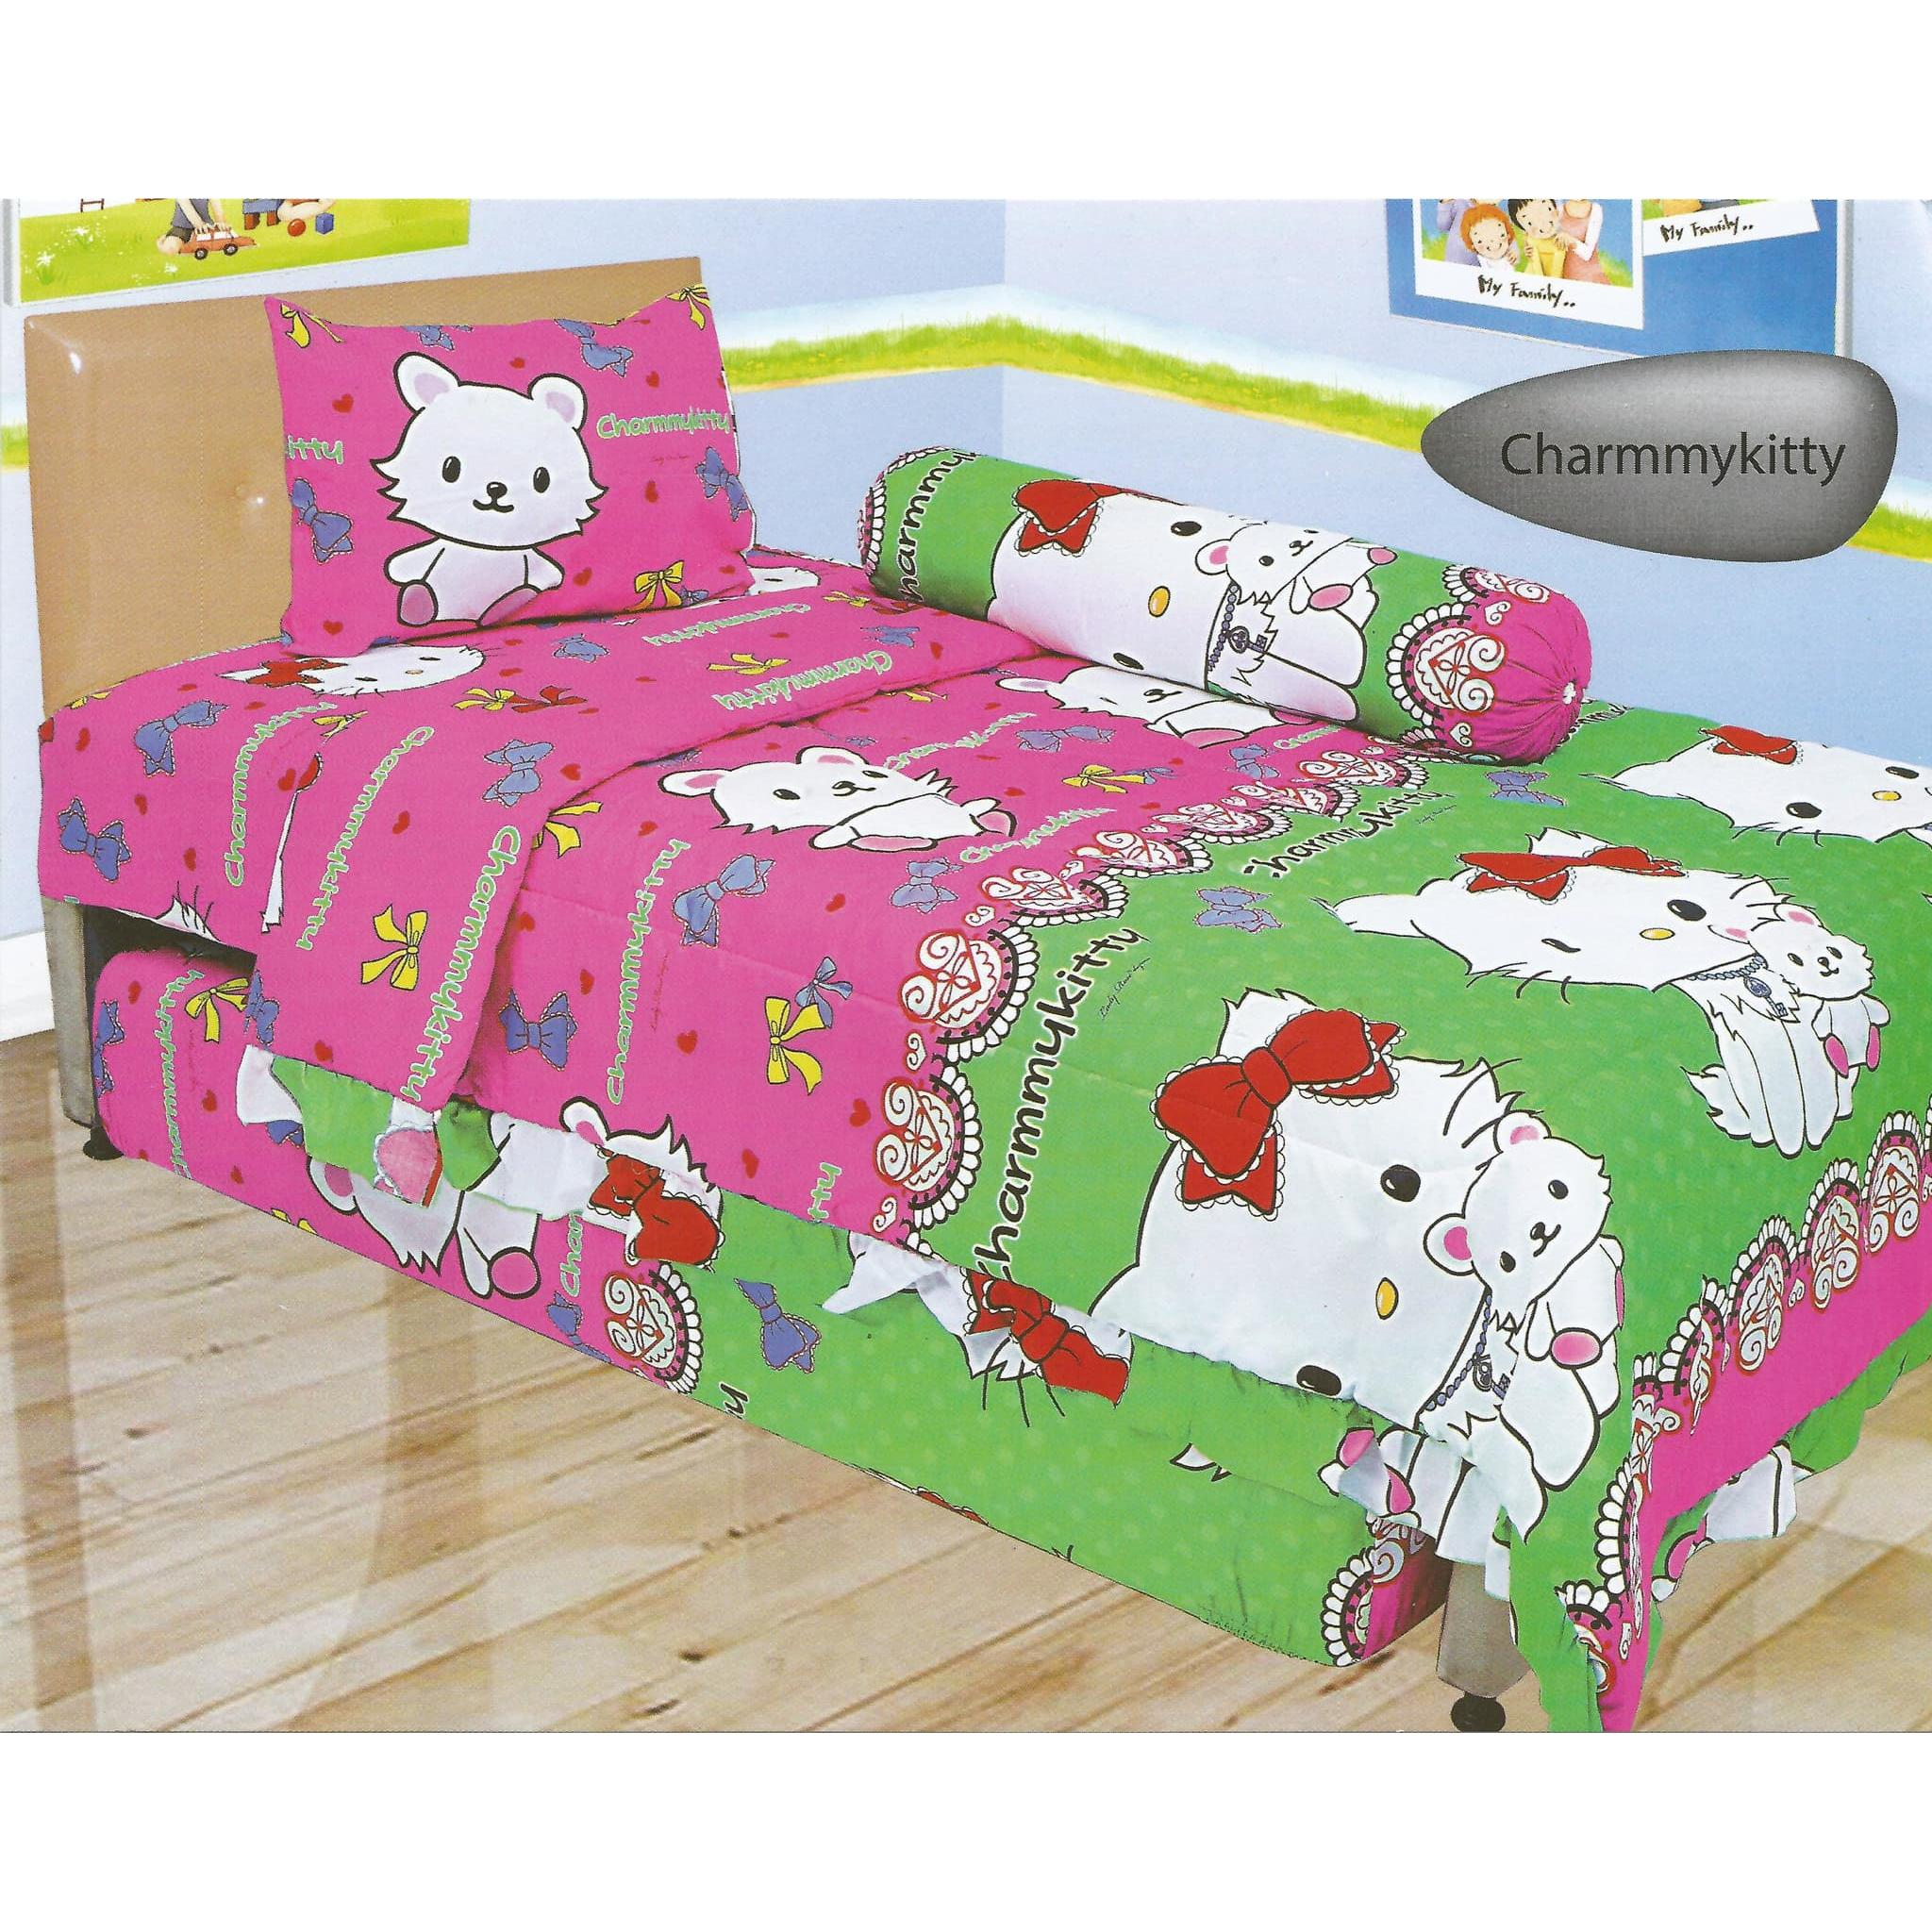 Sprei Lady Rose Single 120 England Daftar Harga Terlengkap Indonesia Katun Import  Uk 120x200 339 401 Disperse Uk120 X 200 Motif Charmmy Kitty